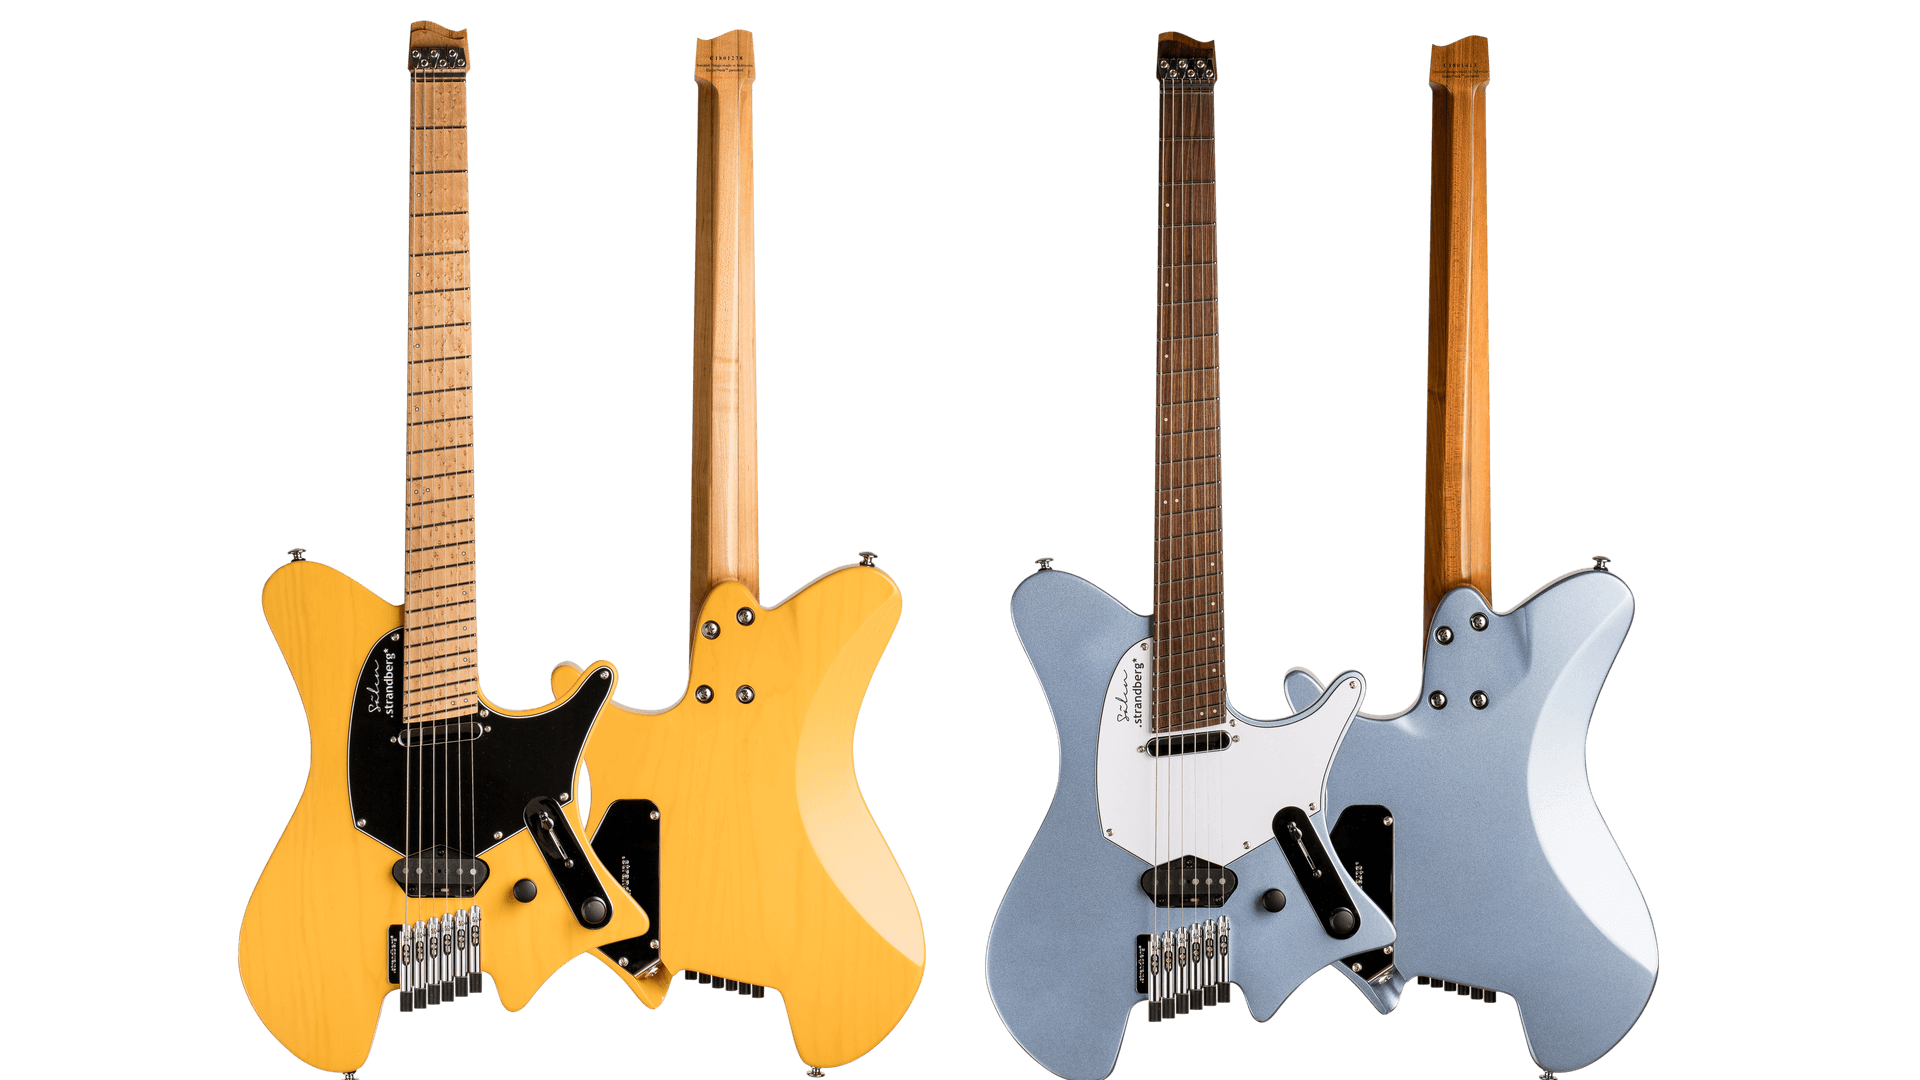 family photo Sälen Classic 6-string guitar Trans Butterscotch & blue metallic